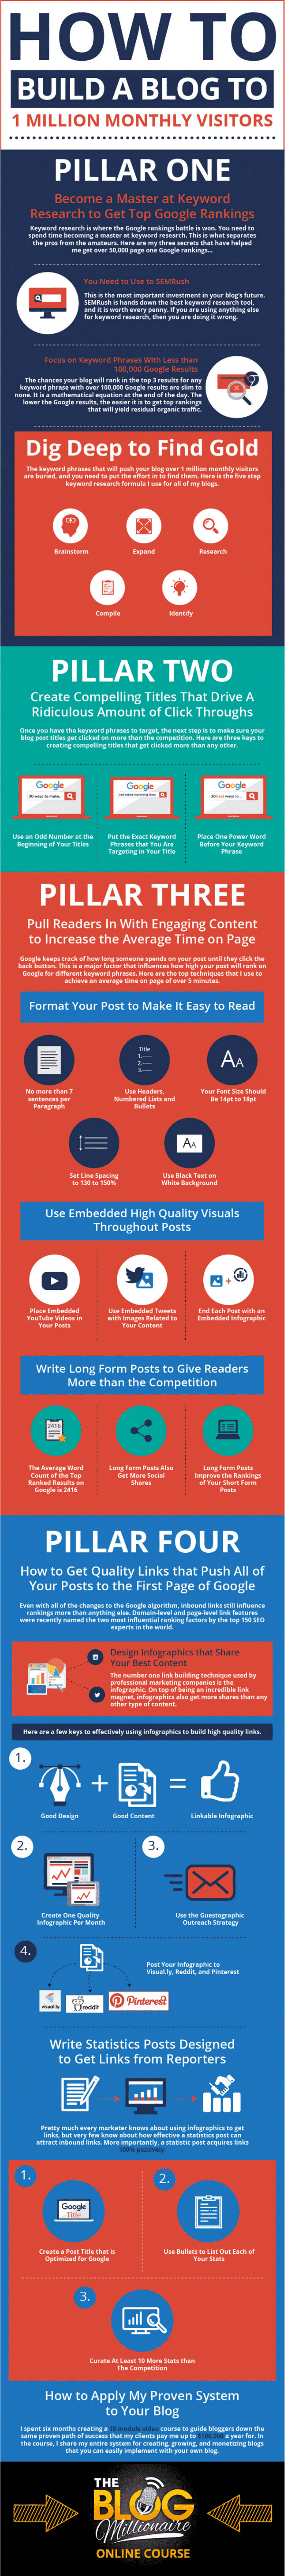 Learn more about how to drive traffic to your blog in this great infographic.